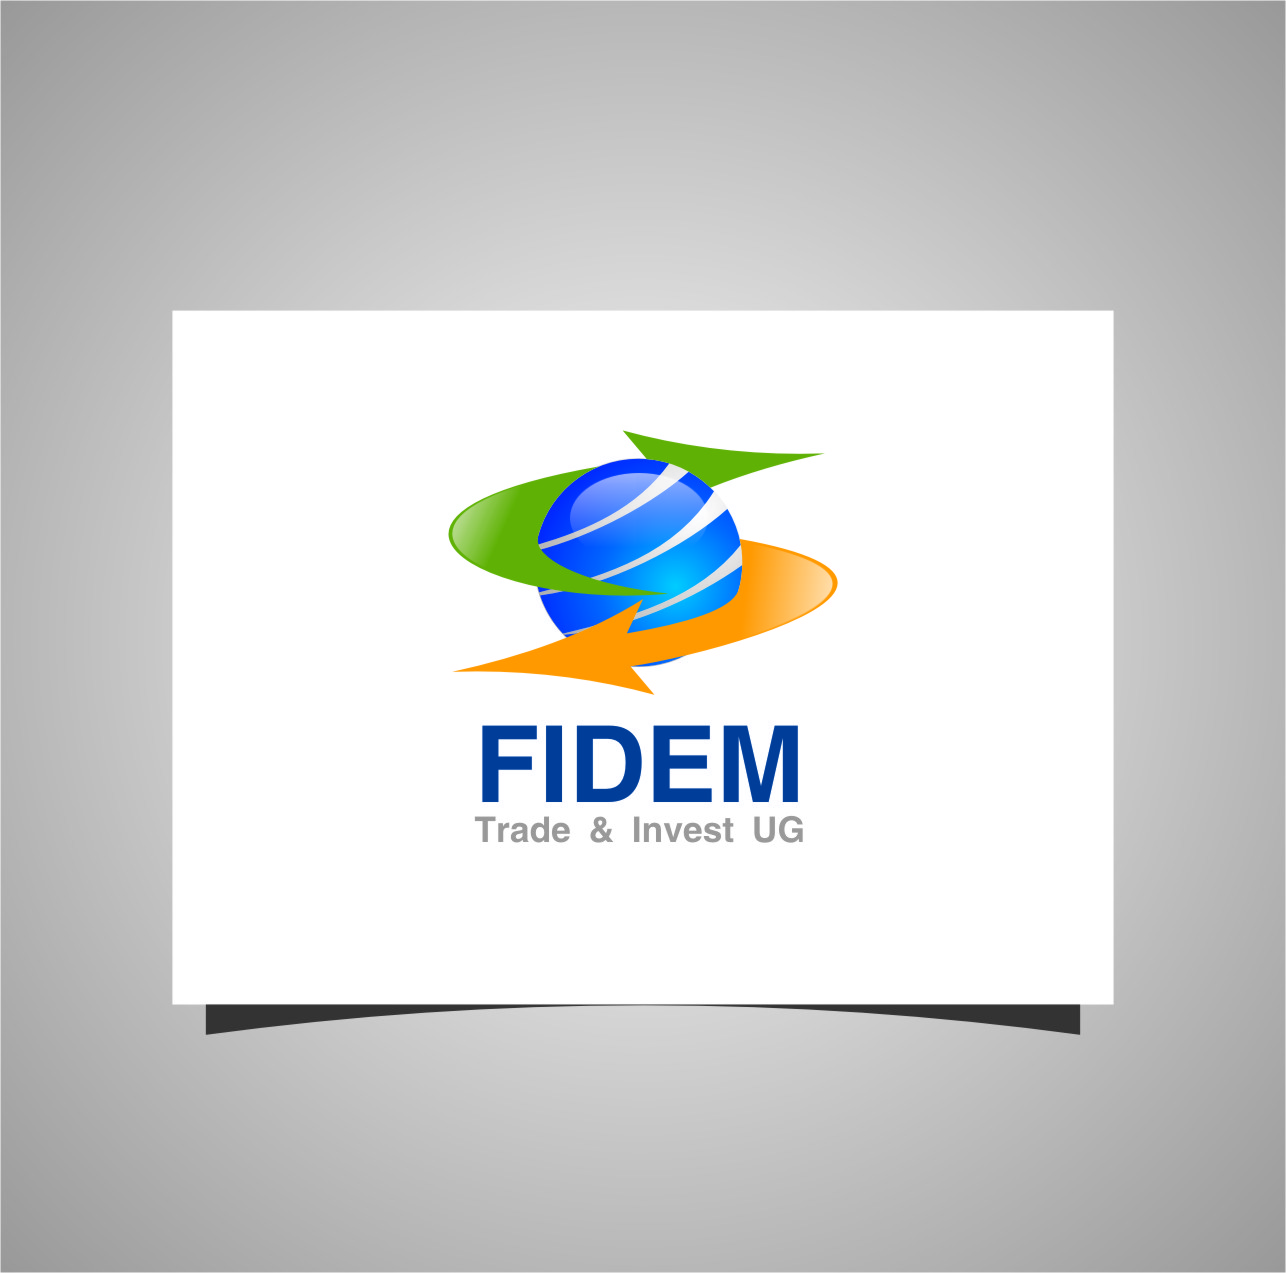 Logo Design by Ngepet_art - Entry No. 16 in the Logo Design Contest Professional Logo Design for FIDEM Trade & Invest UG.